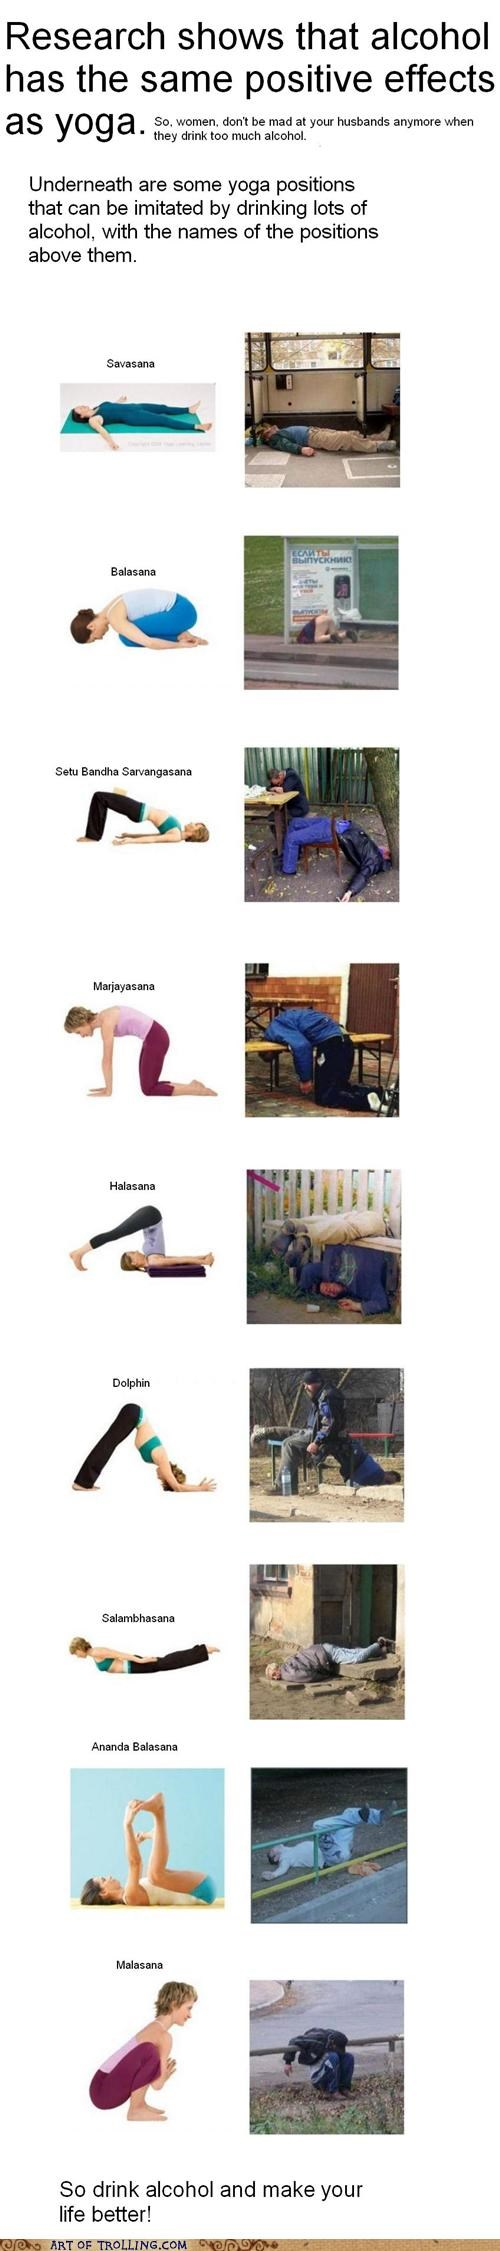 drinking passed out positions yoga - 4825082624